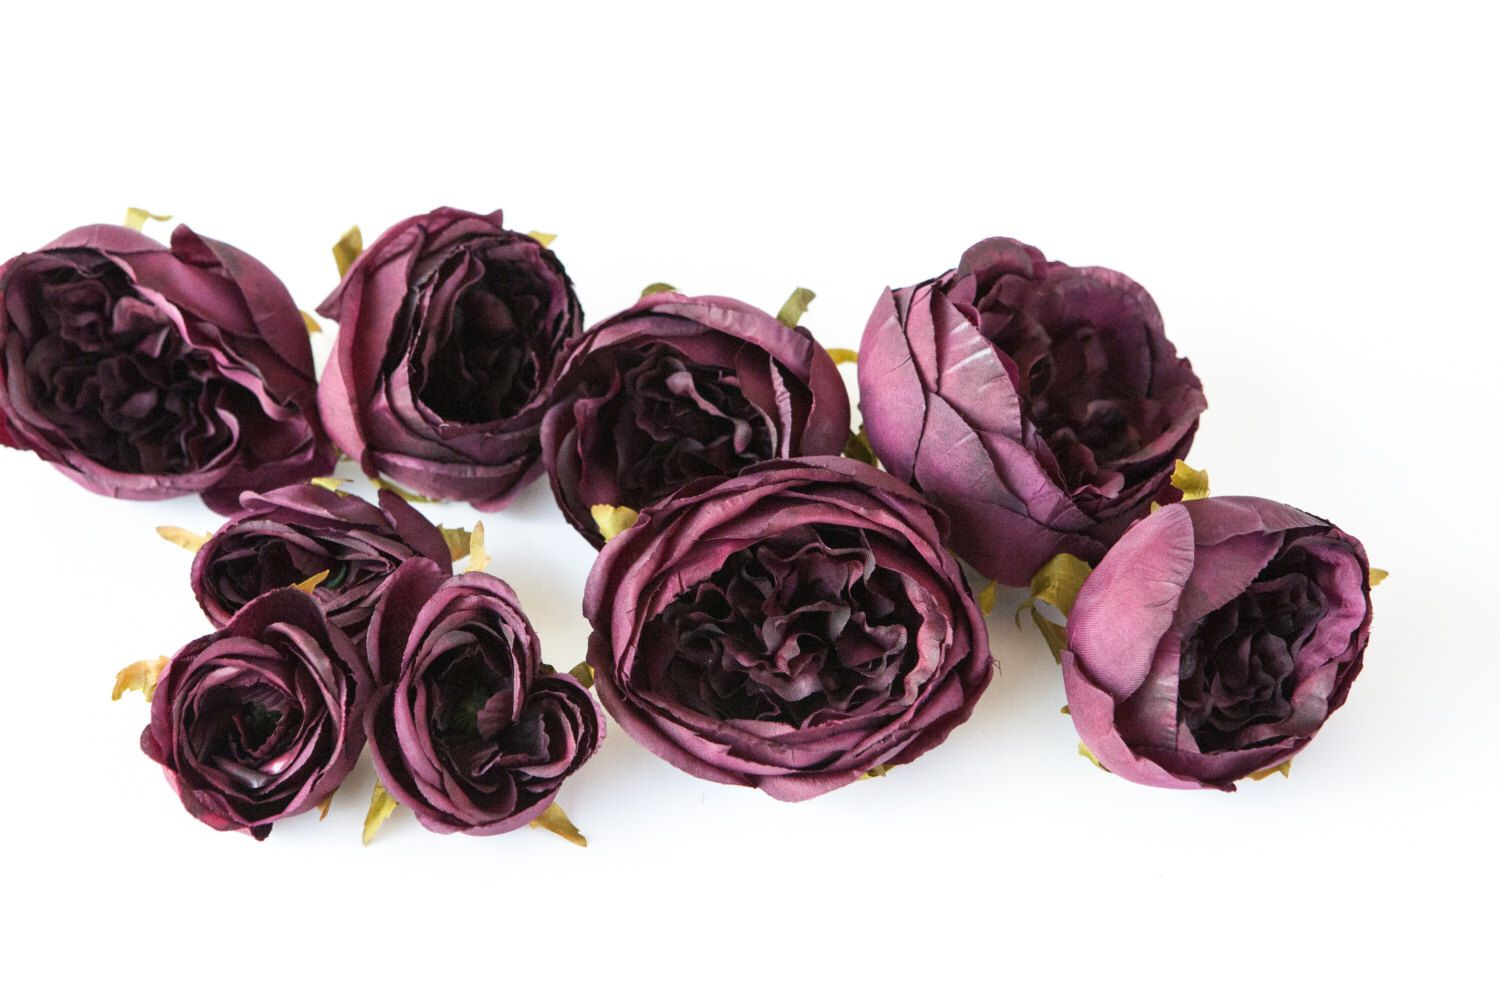 Set of 9 small to large cabbage roses in plum dark purple silk set of 9 small to large cabbage roses in plum dark purple silk artificial flowers read description item 0967 by simplyserrafloral on etsy mightylinksfo